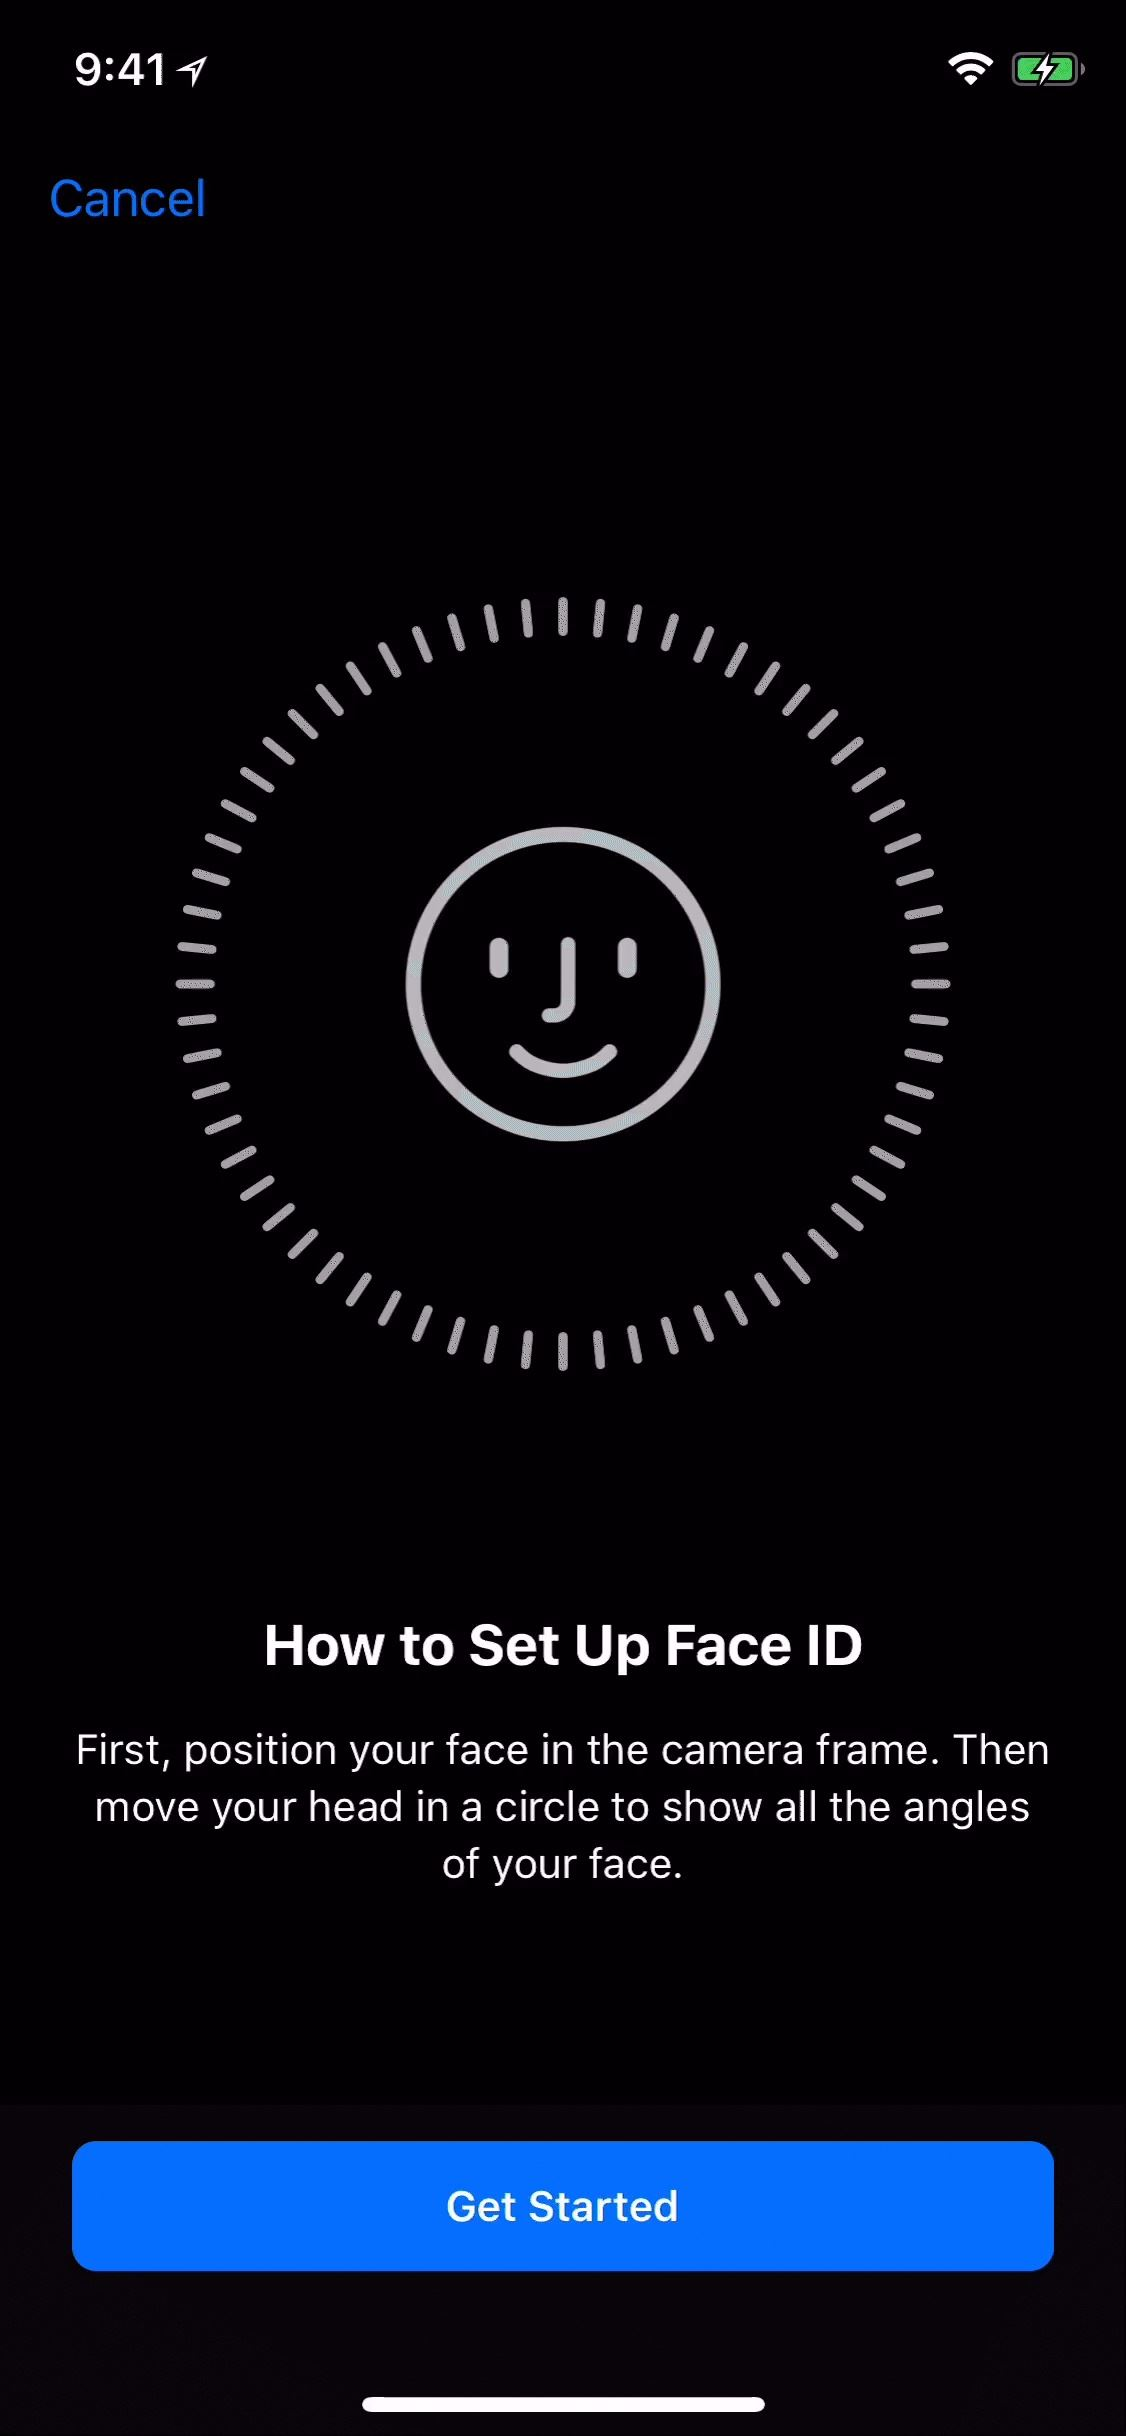 How To Register A Second Face ID Search On Your iPhone X In iOS 12